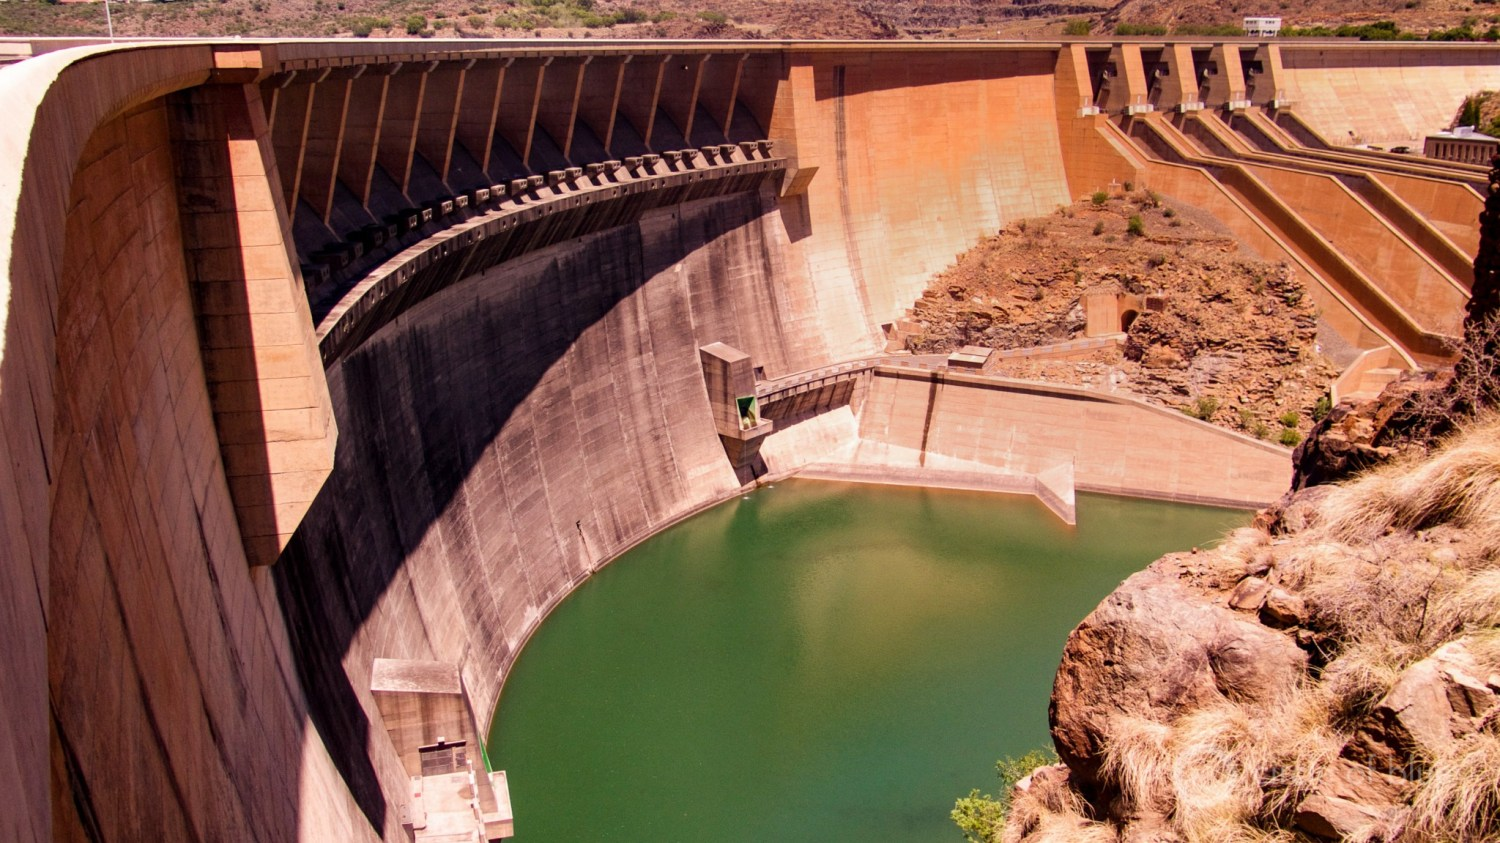 The Vandekloof Dam on the Orange River in Northern Cape province was completed in 1977 and holds back one of South Africa's largest reservoirs.